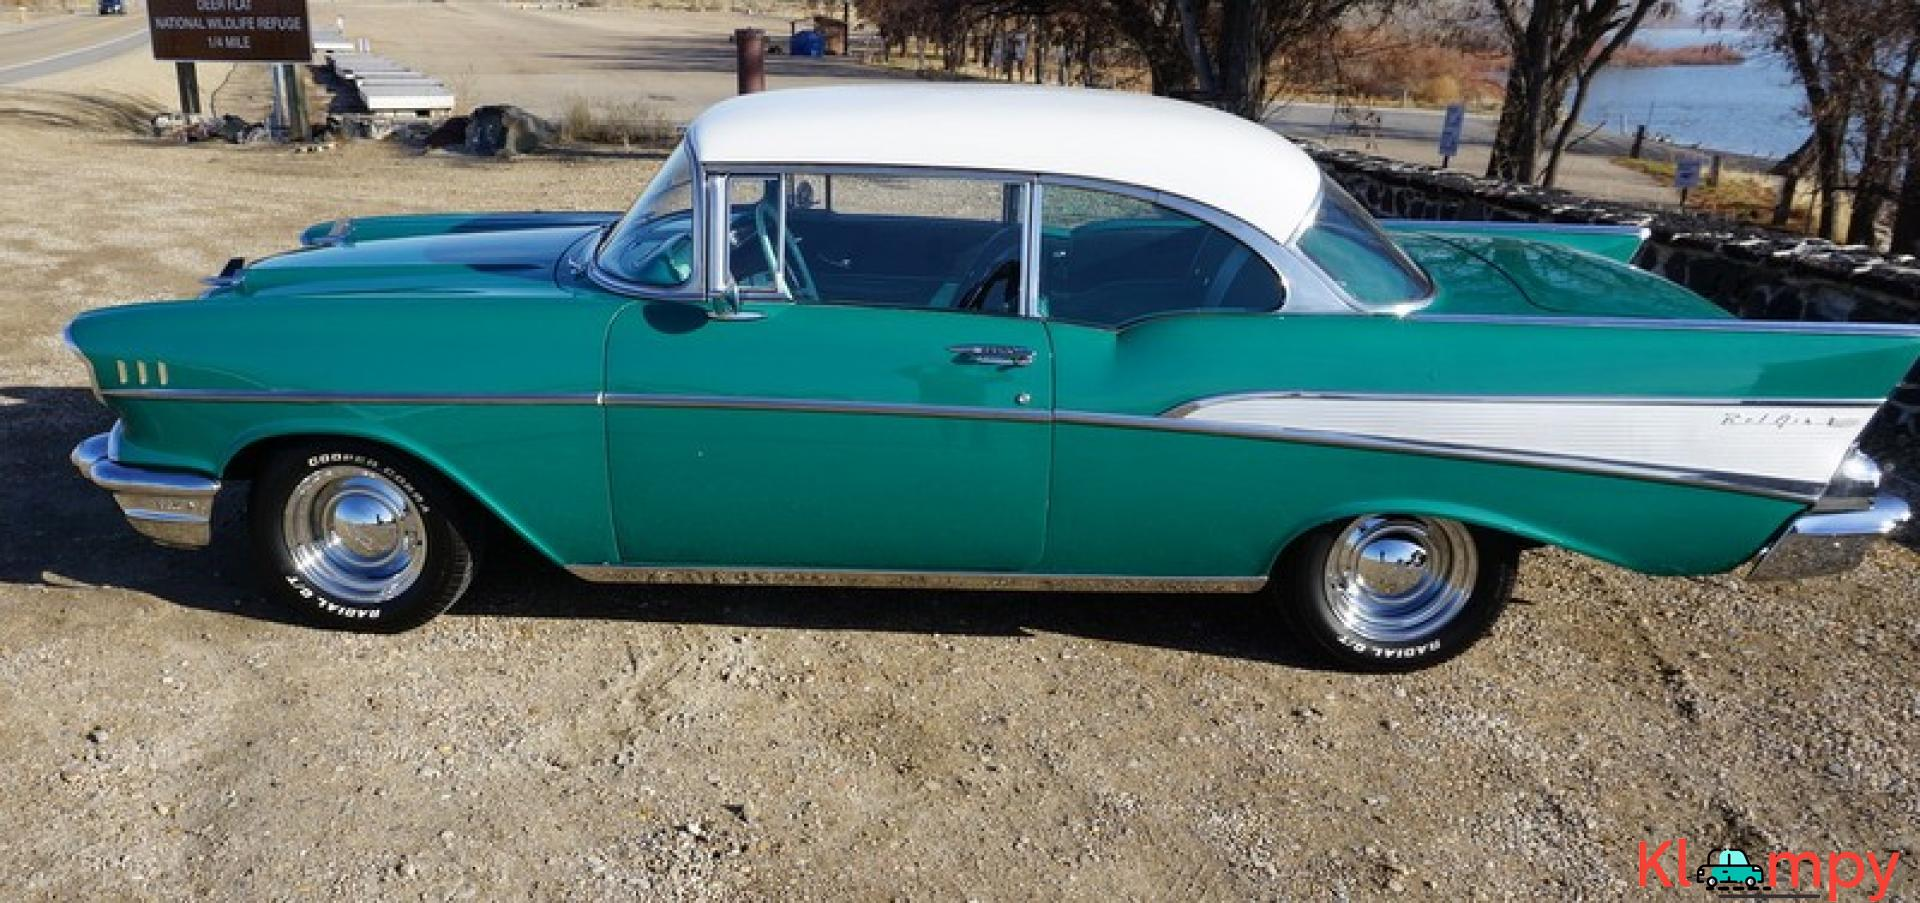 1957 Chevrolet Bel Air 150 210 Hardtop - 8/20